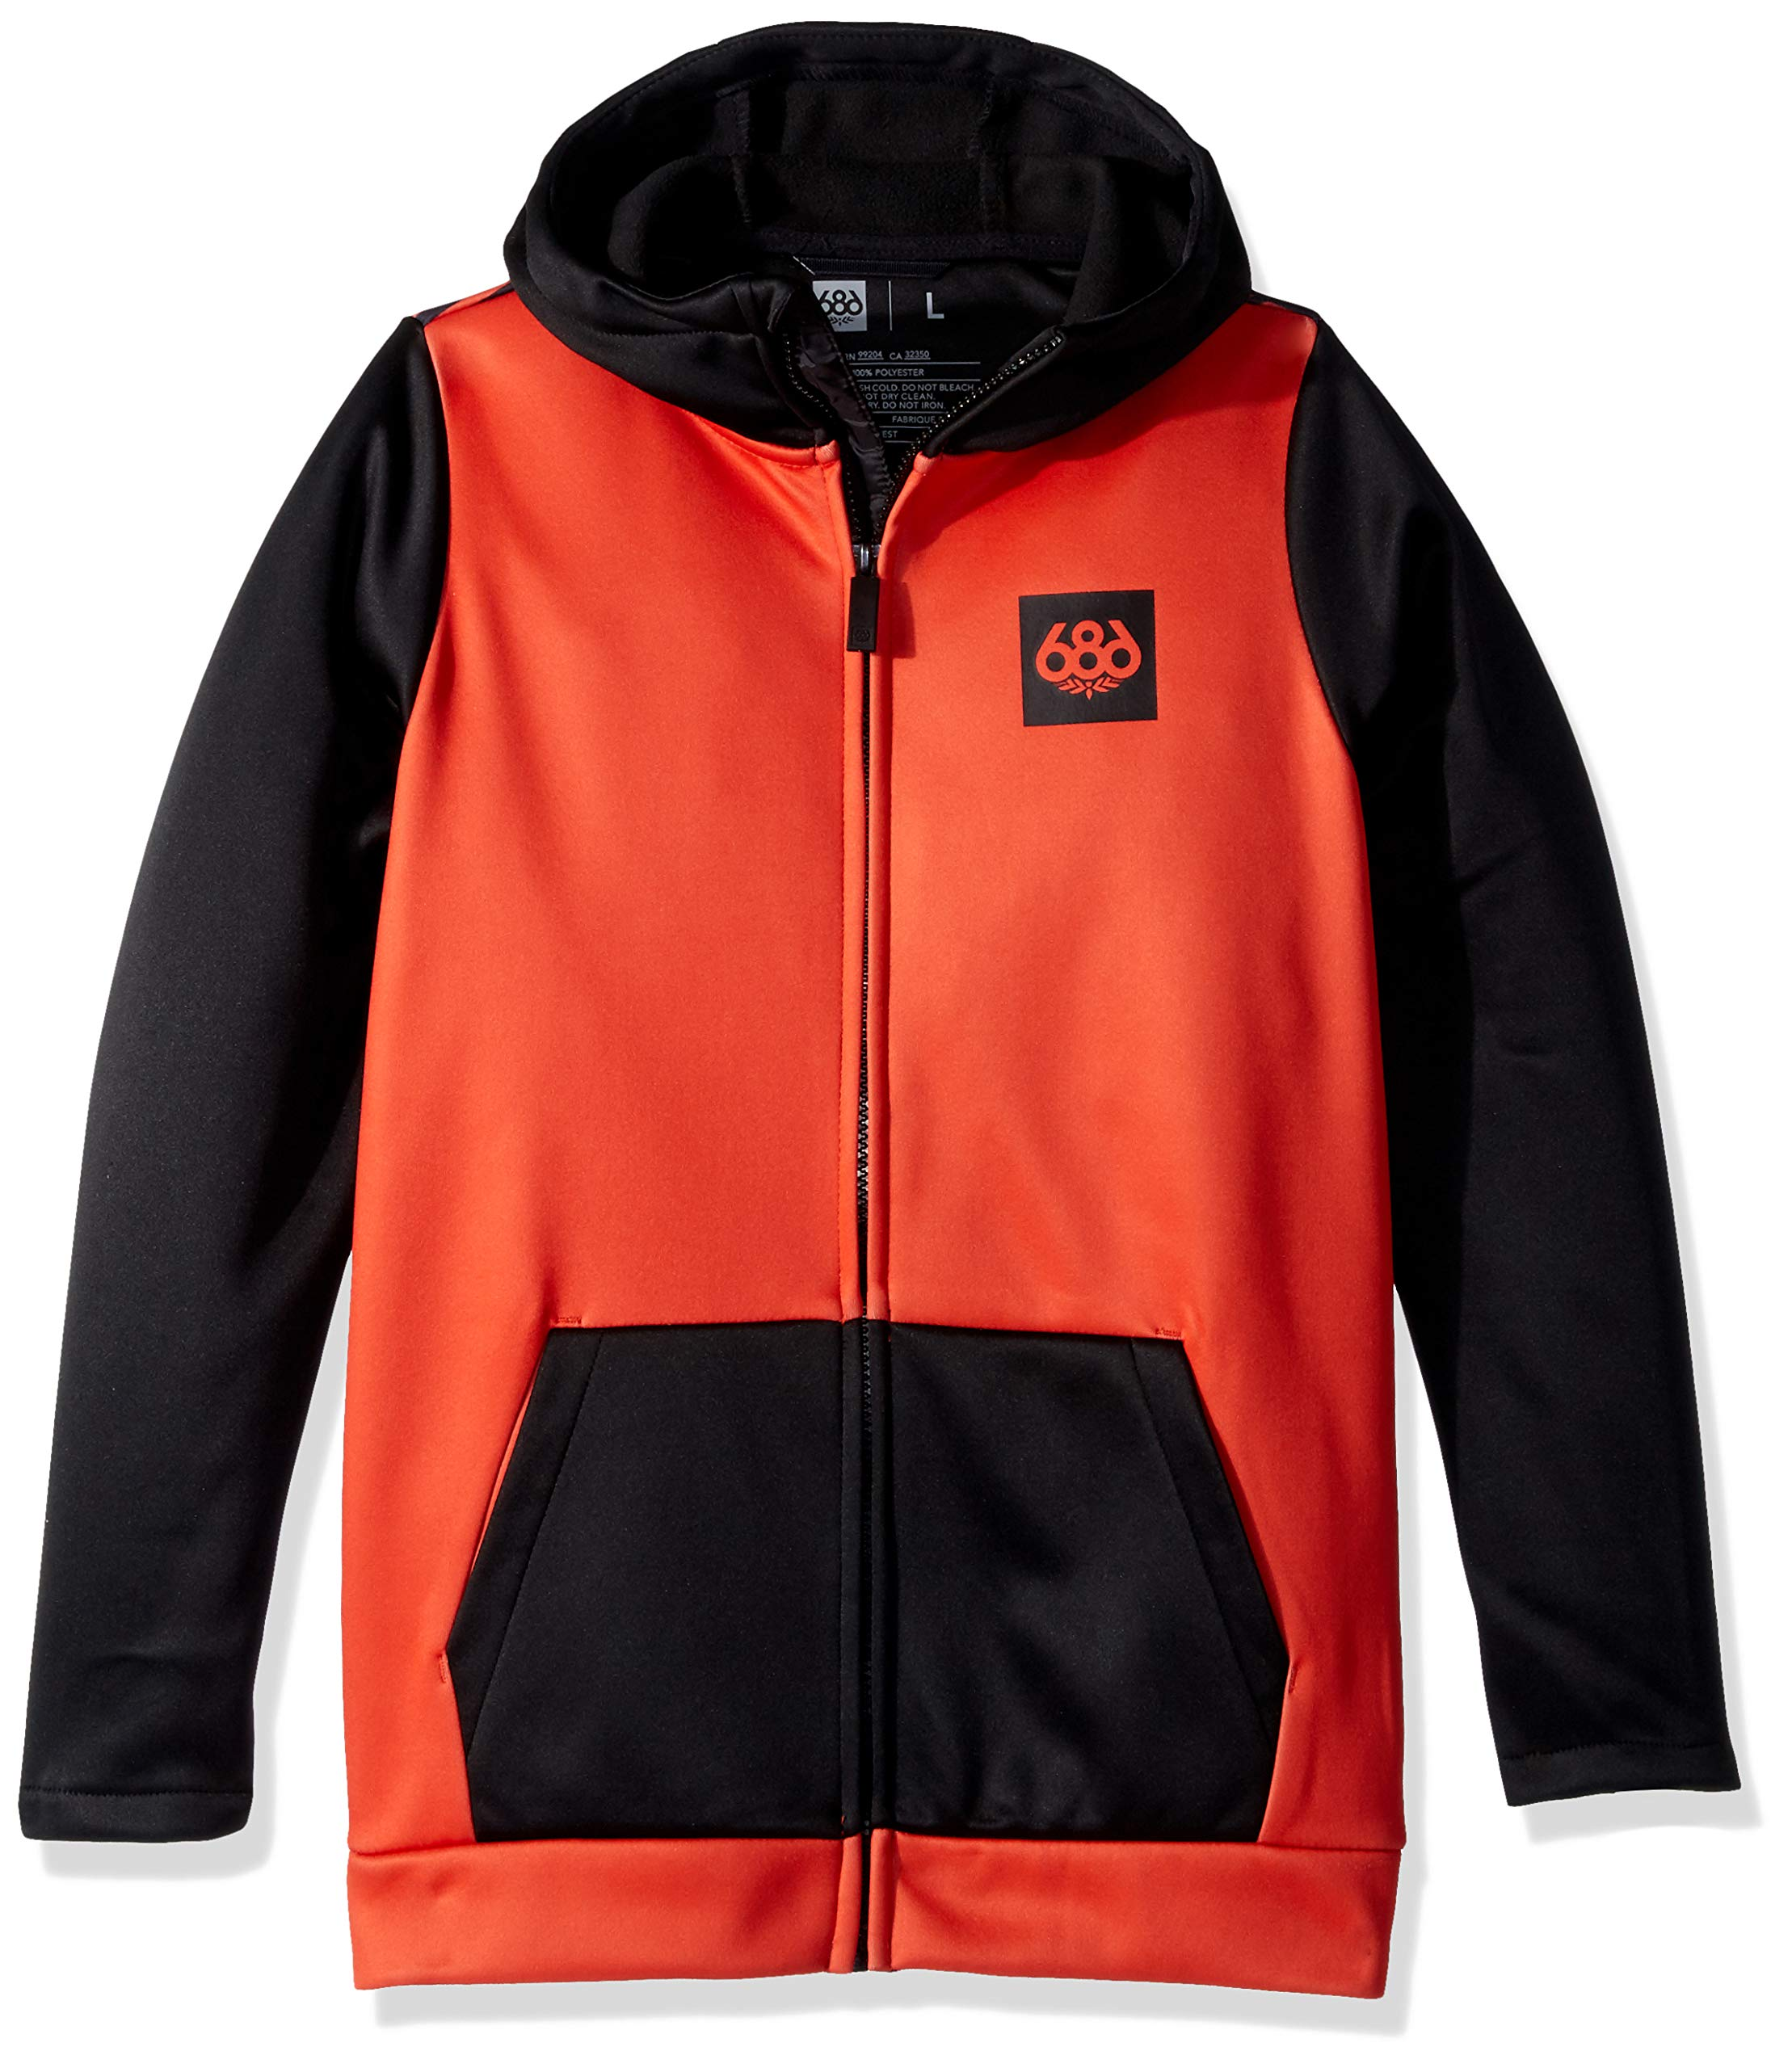 686 Boys' Bonded Zip-Up Hoody | Jersey and Fleece Backed Jacket | Infrared imation - L